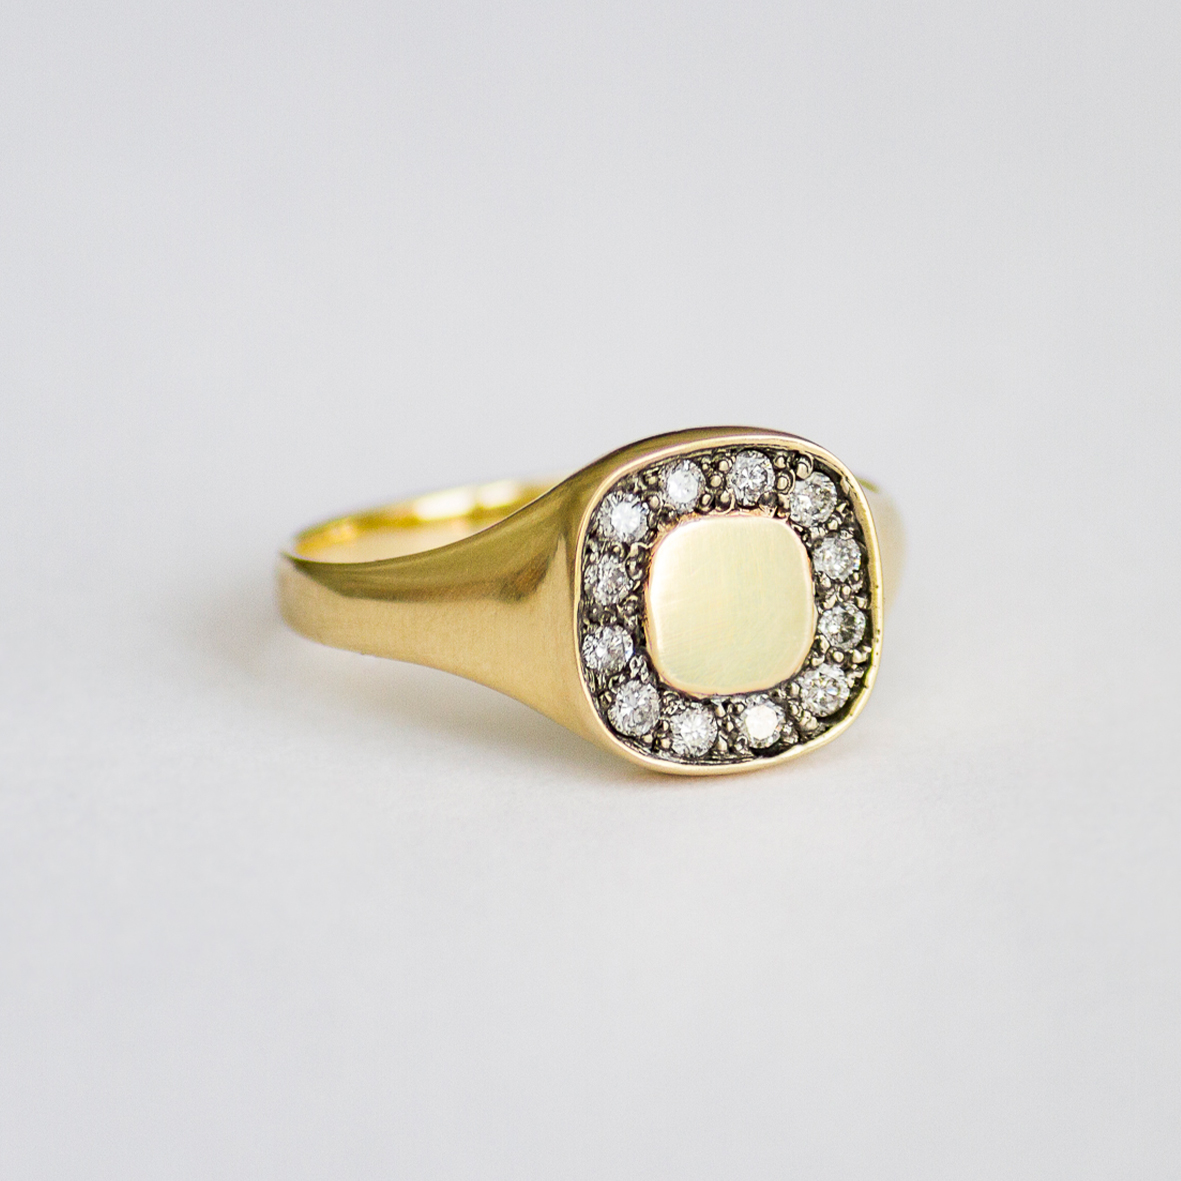 2. OONA_lotus_principal_signet square diamond ring